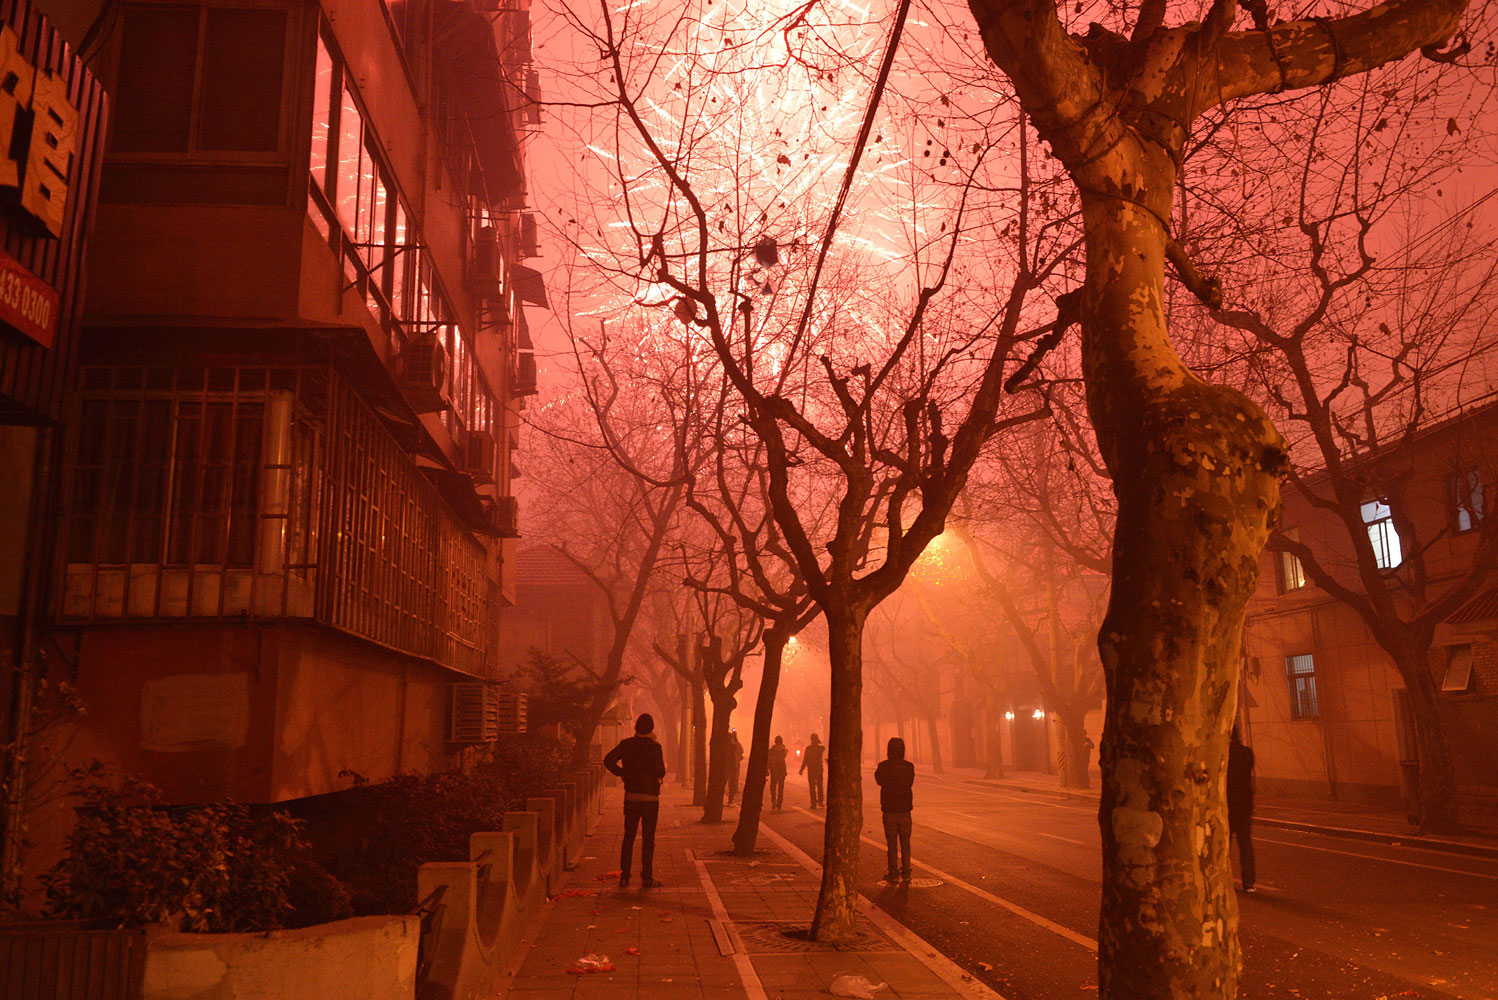 Fireworks explode in a street of Shanghai on the eve of Chinese New Year on Jan. 30, 2014.